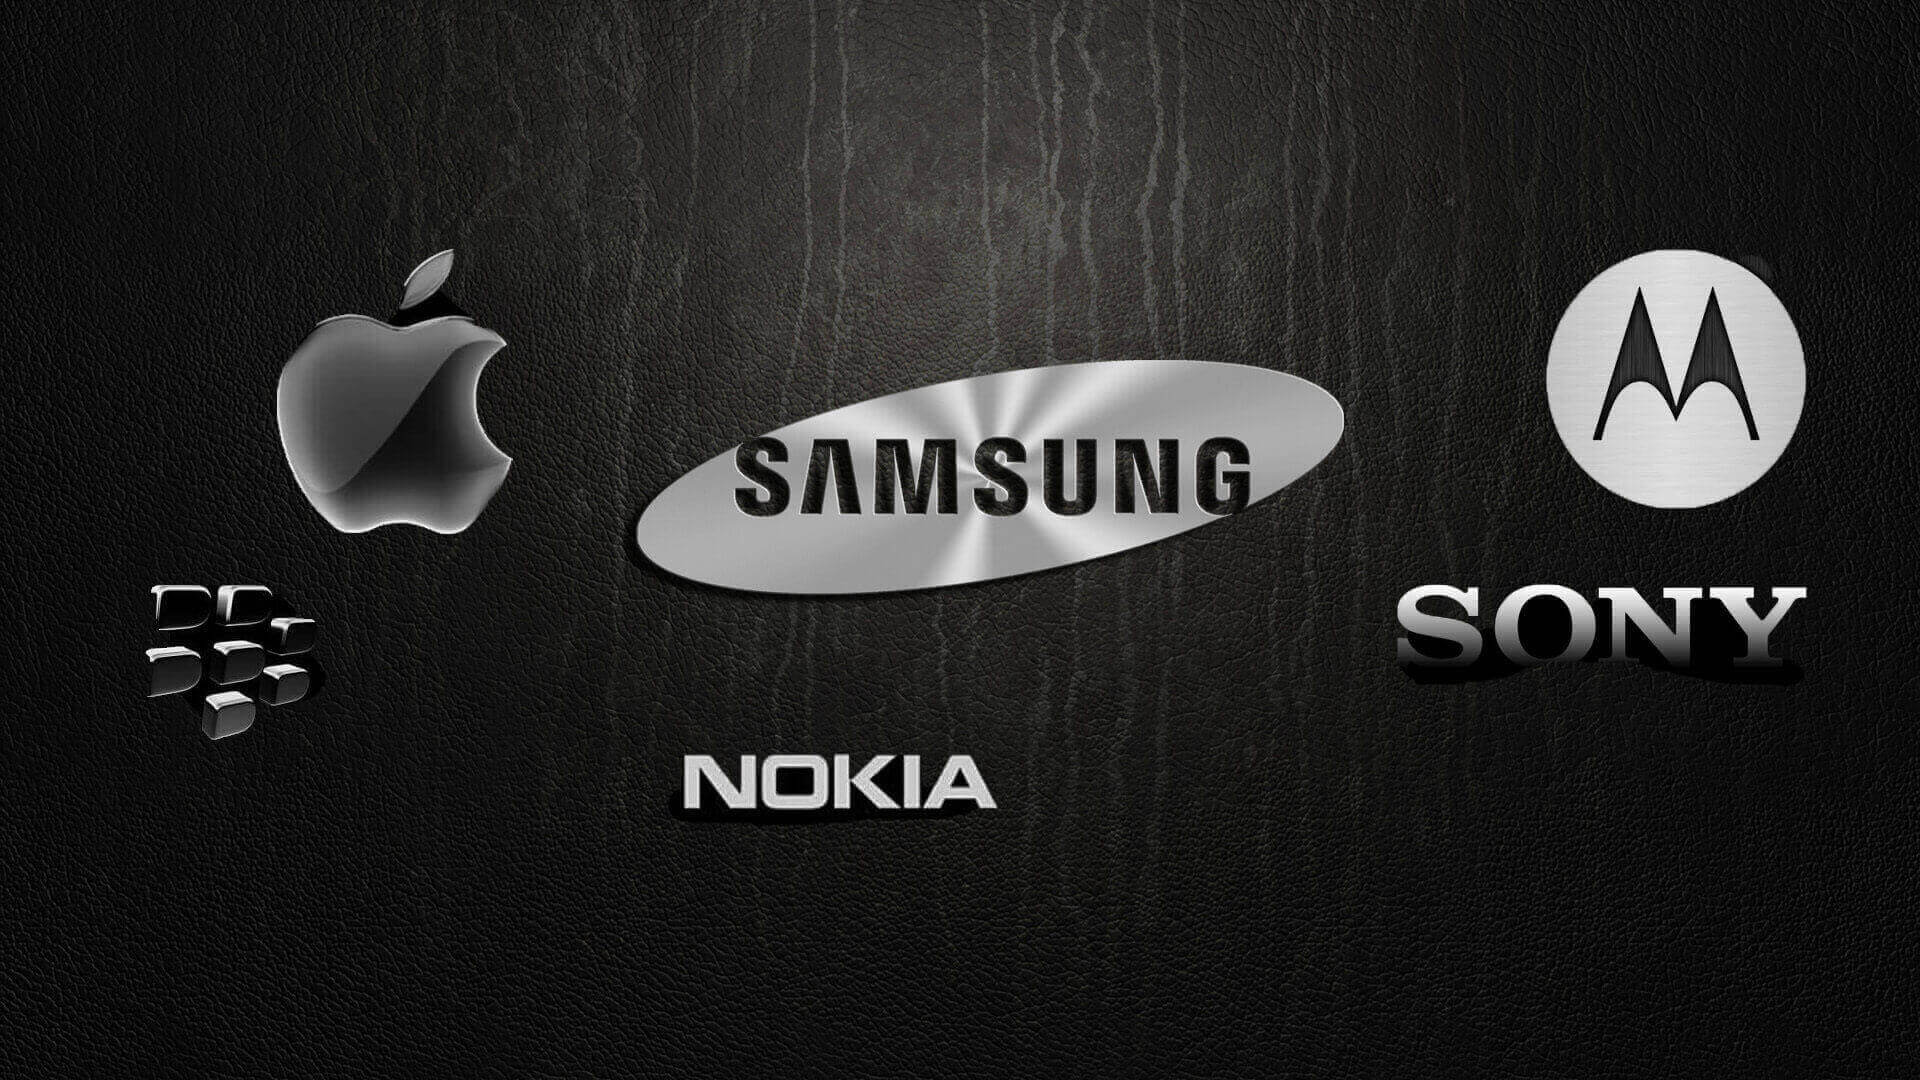 Blackberry apple samsung nokia sony motorola phone repair on black background